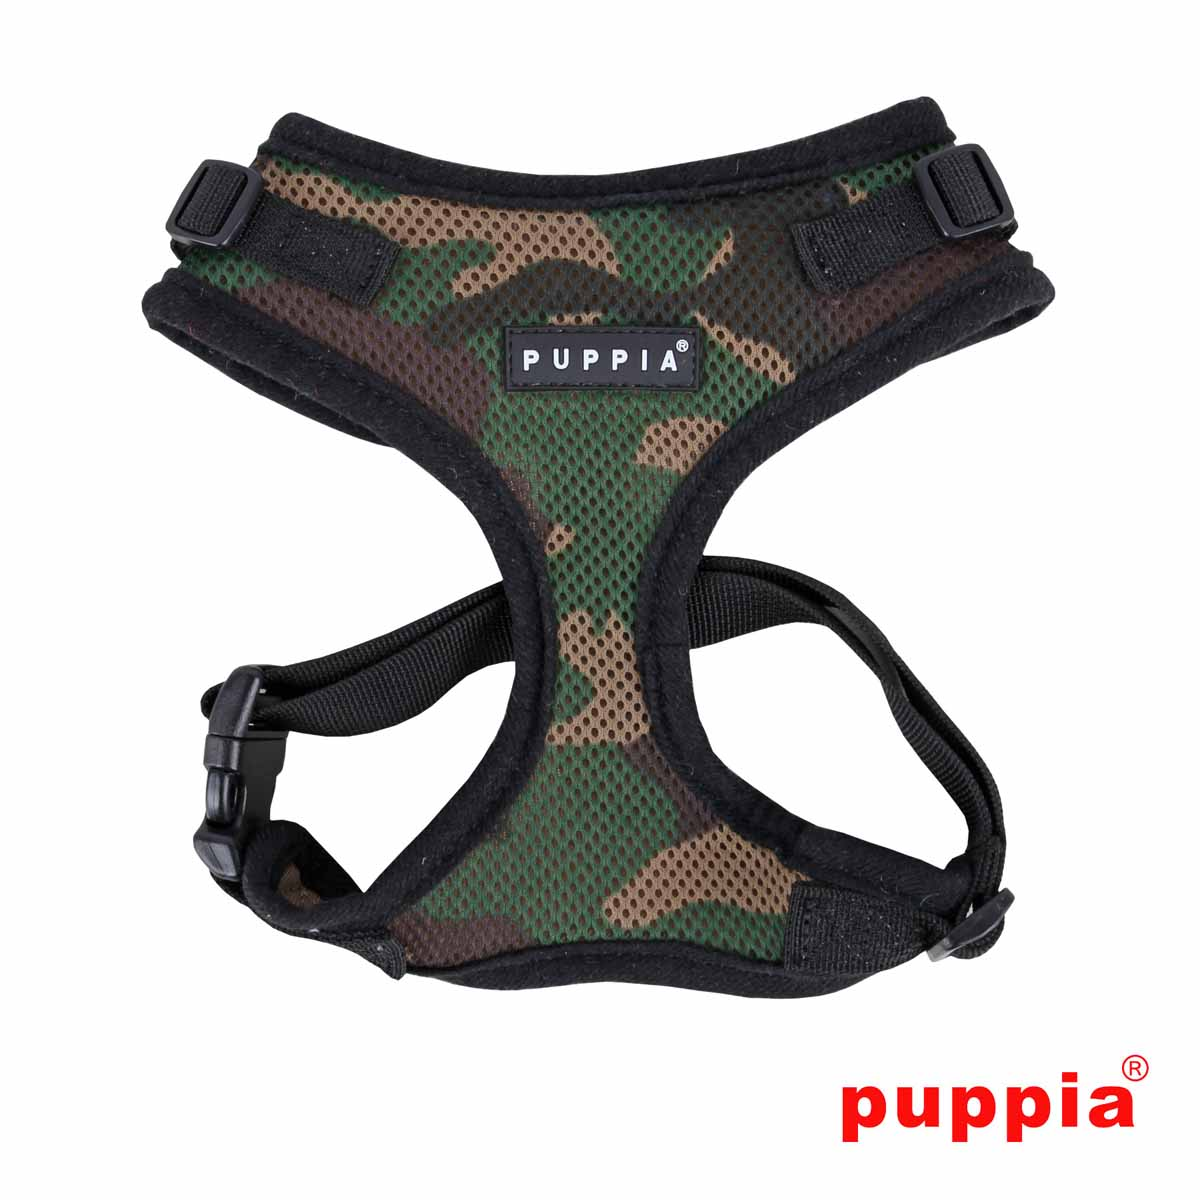 Ritefit Soft Dog Harness by Puppia - Camo